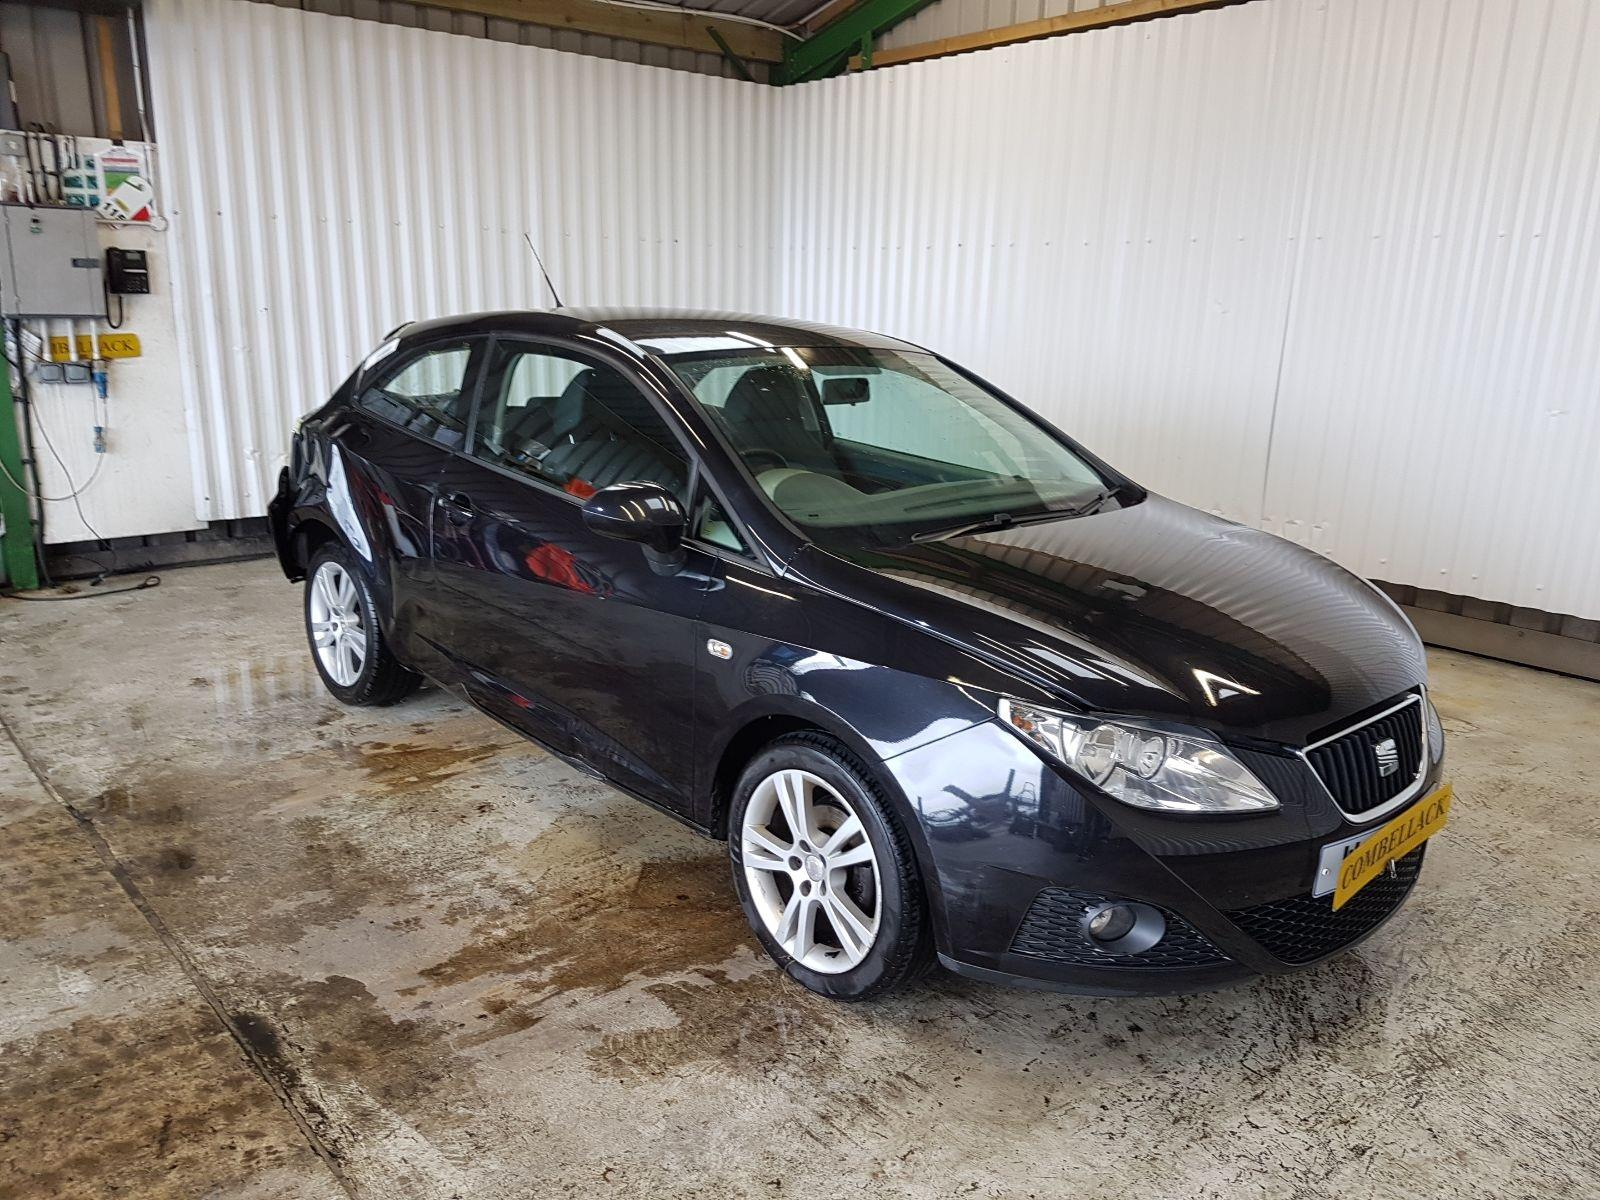 SEAT Ibiza 2009 To 2012 SE 3 Door Hatchback